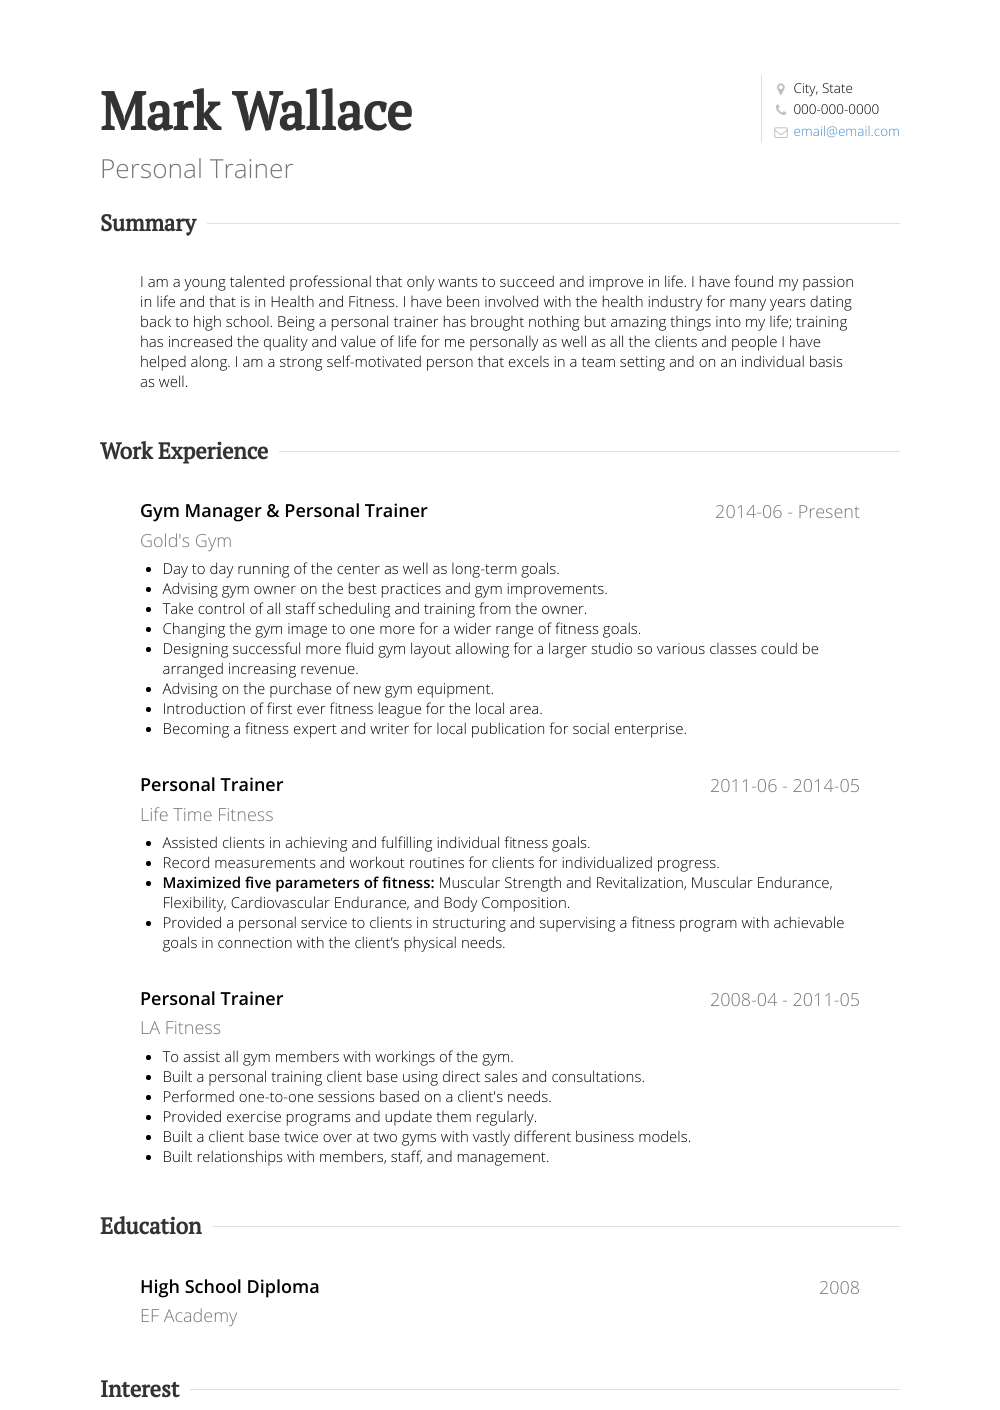 Personal Trainer Resume Sample and Template